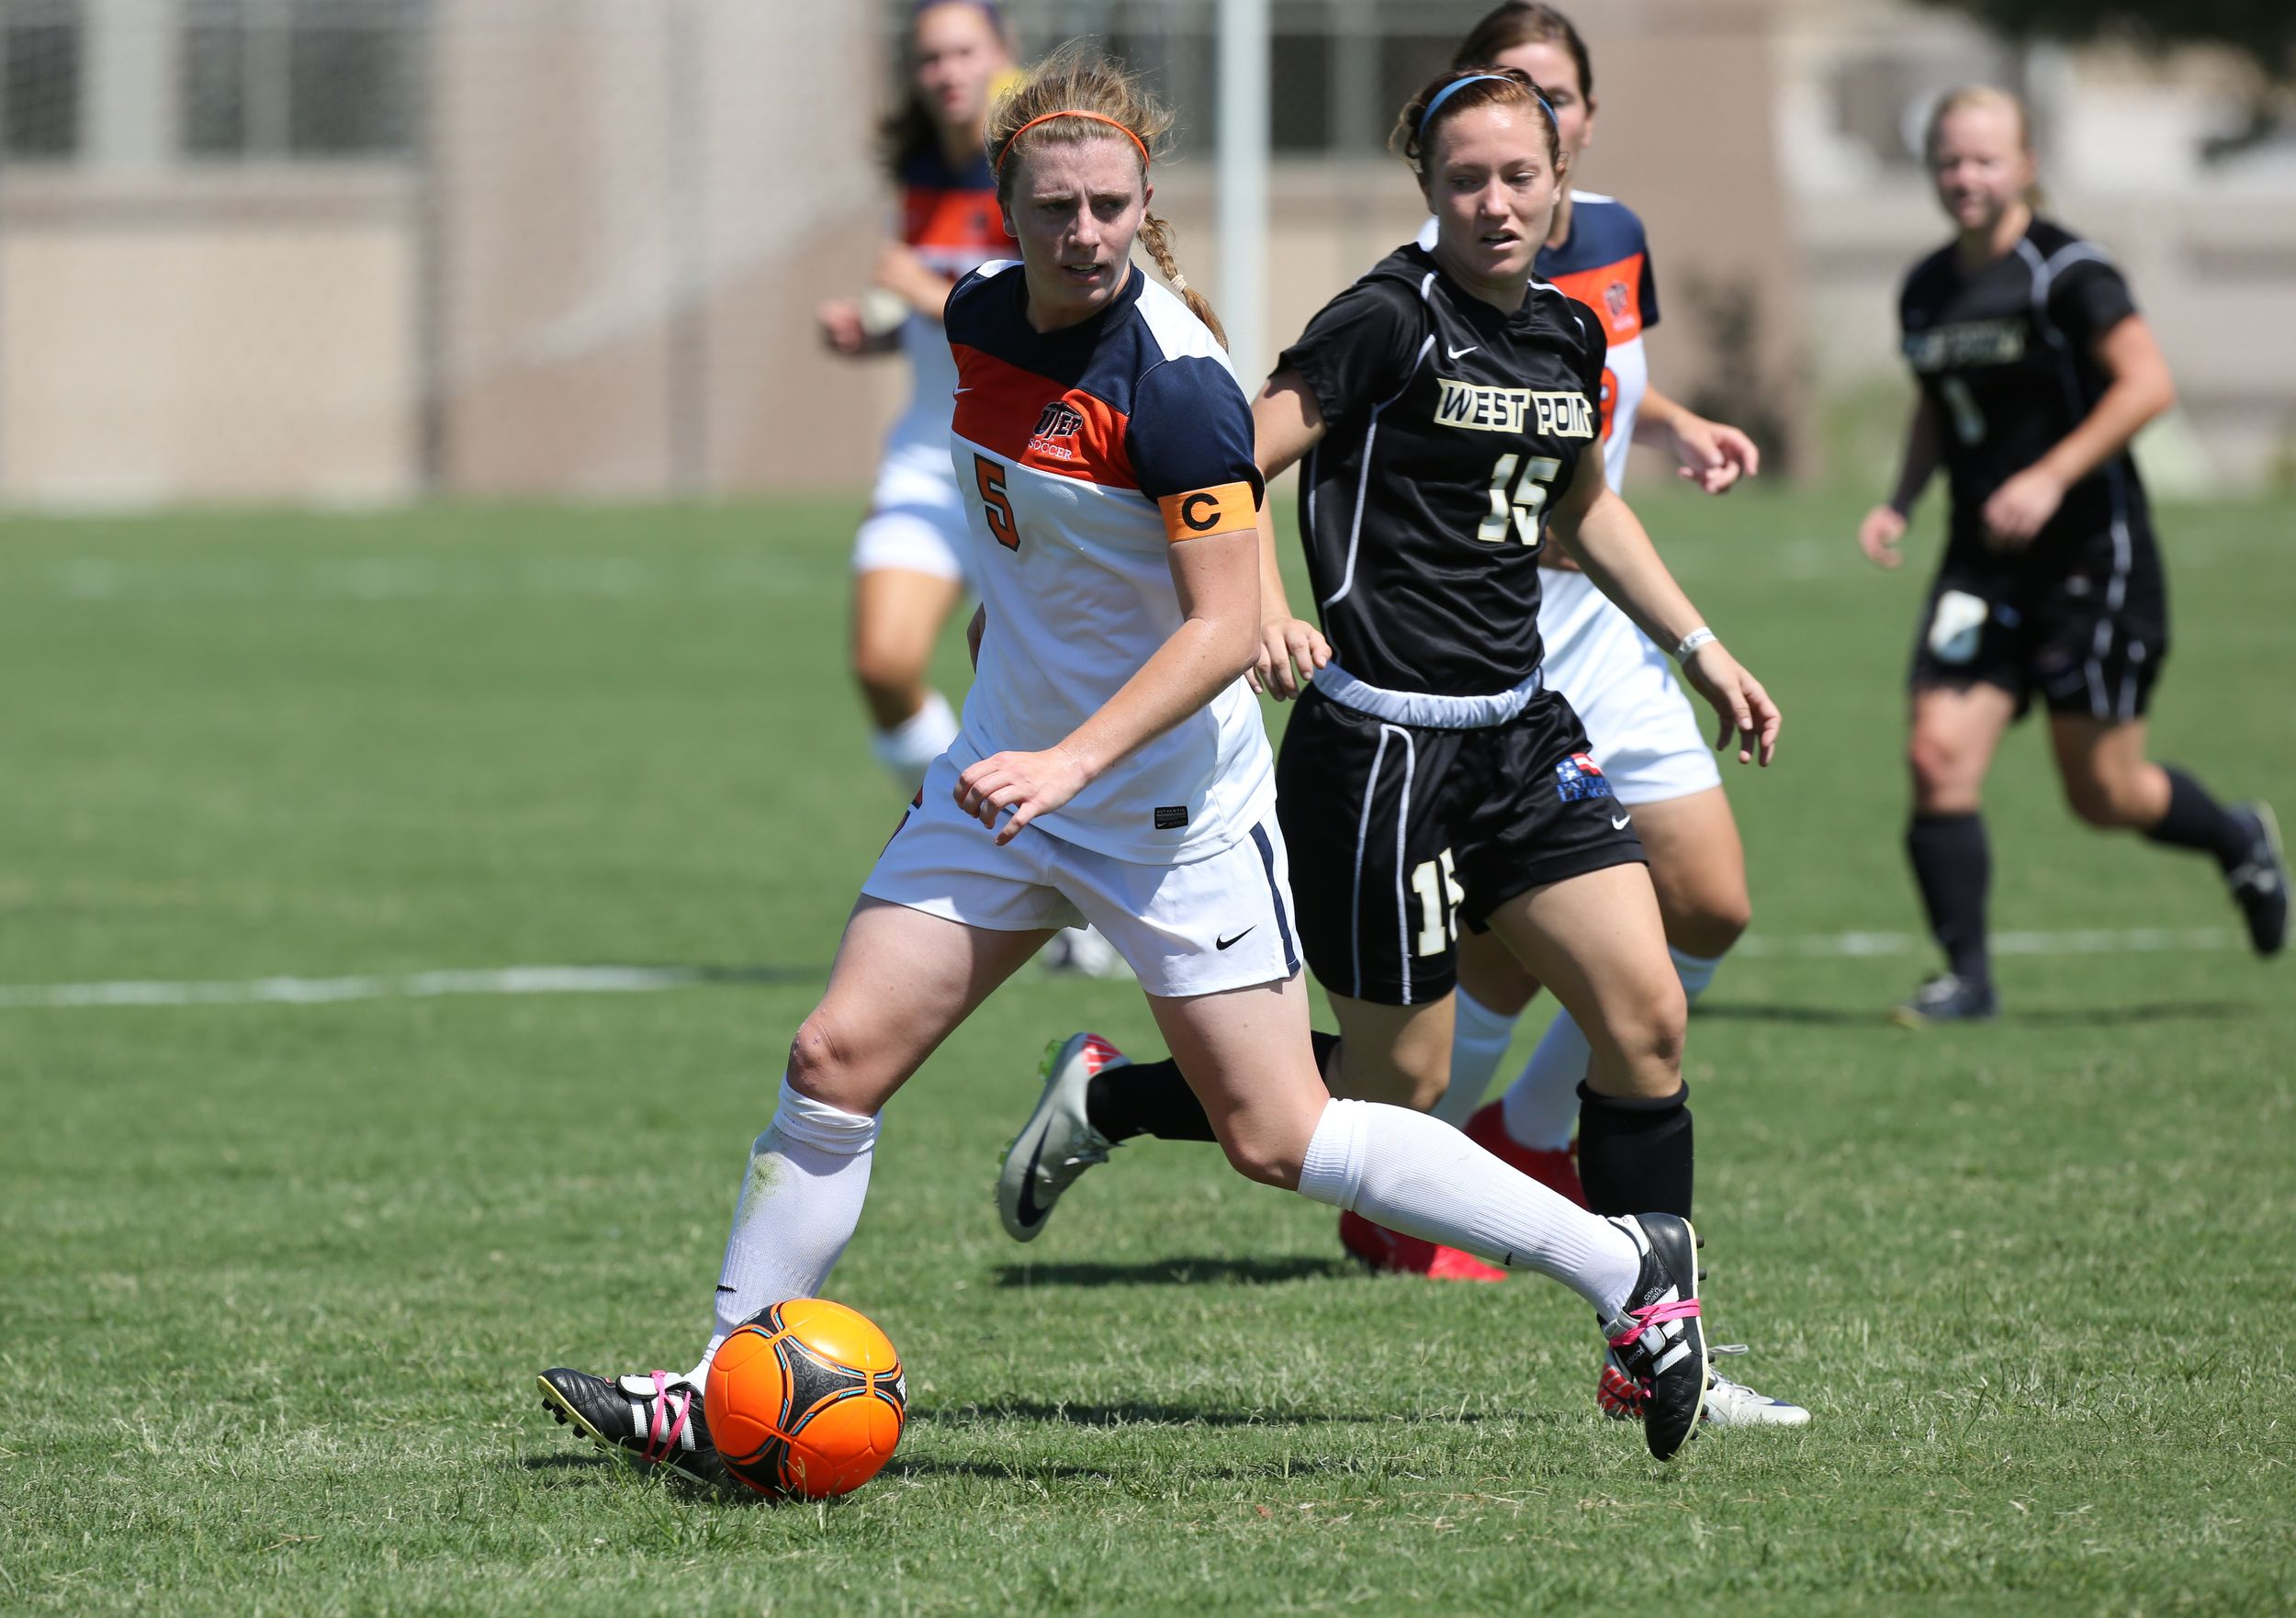 Tess Hall Utep 8 27 Fall Sports Womens Soccer Mens Soccer